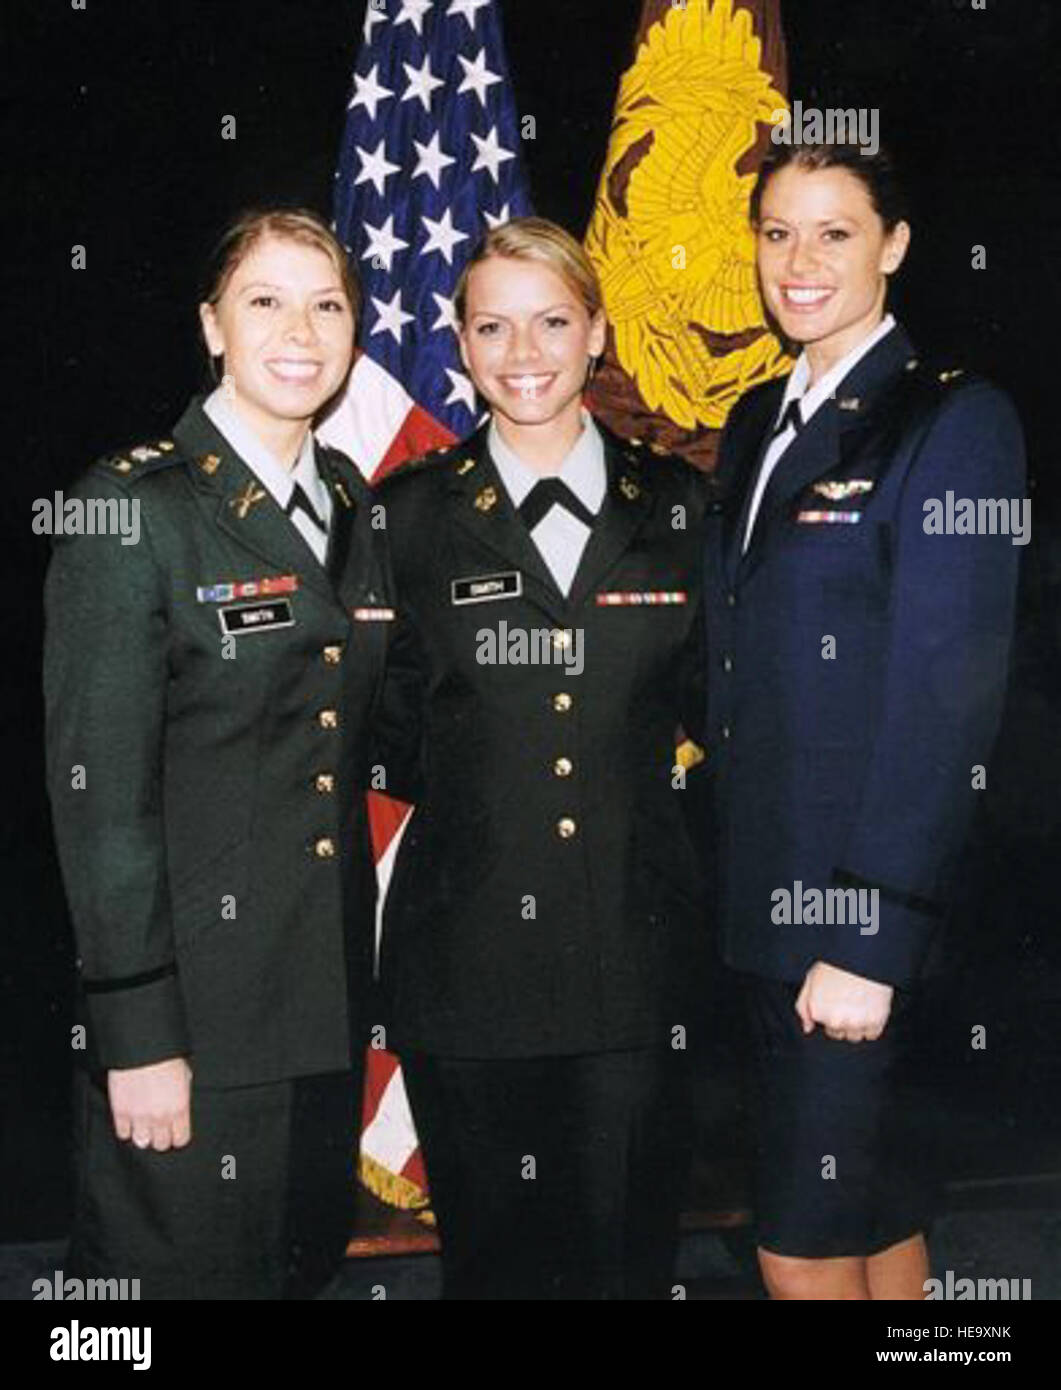 Army Chief Warrant Officer Amber Smith (left) and Air Force Capt ...